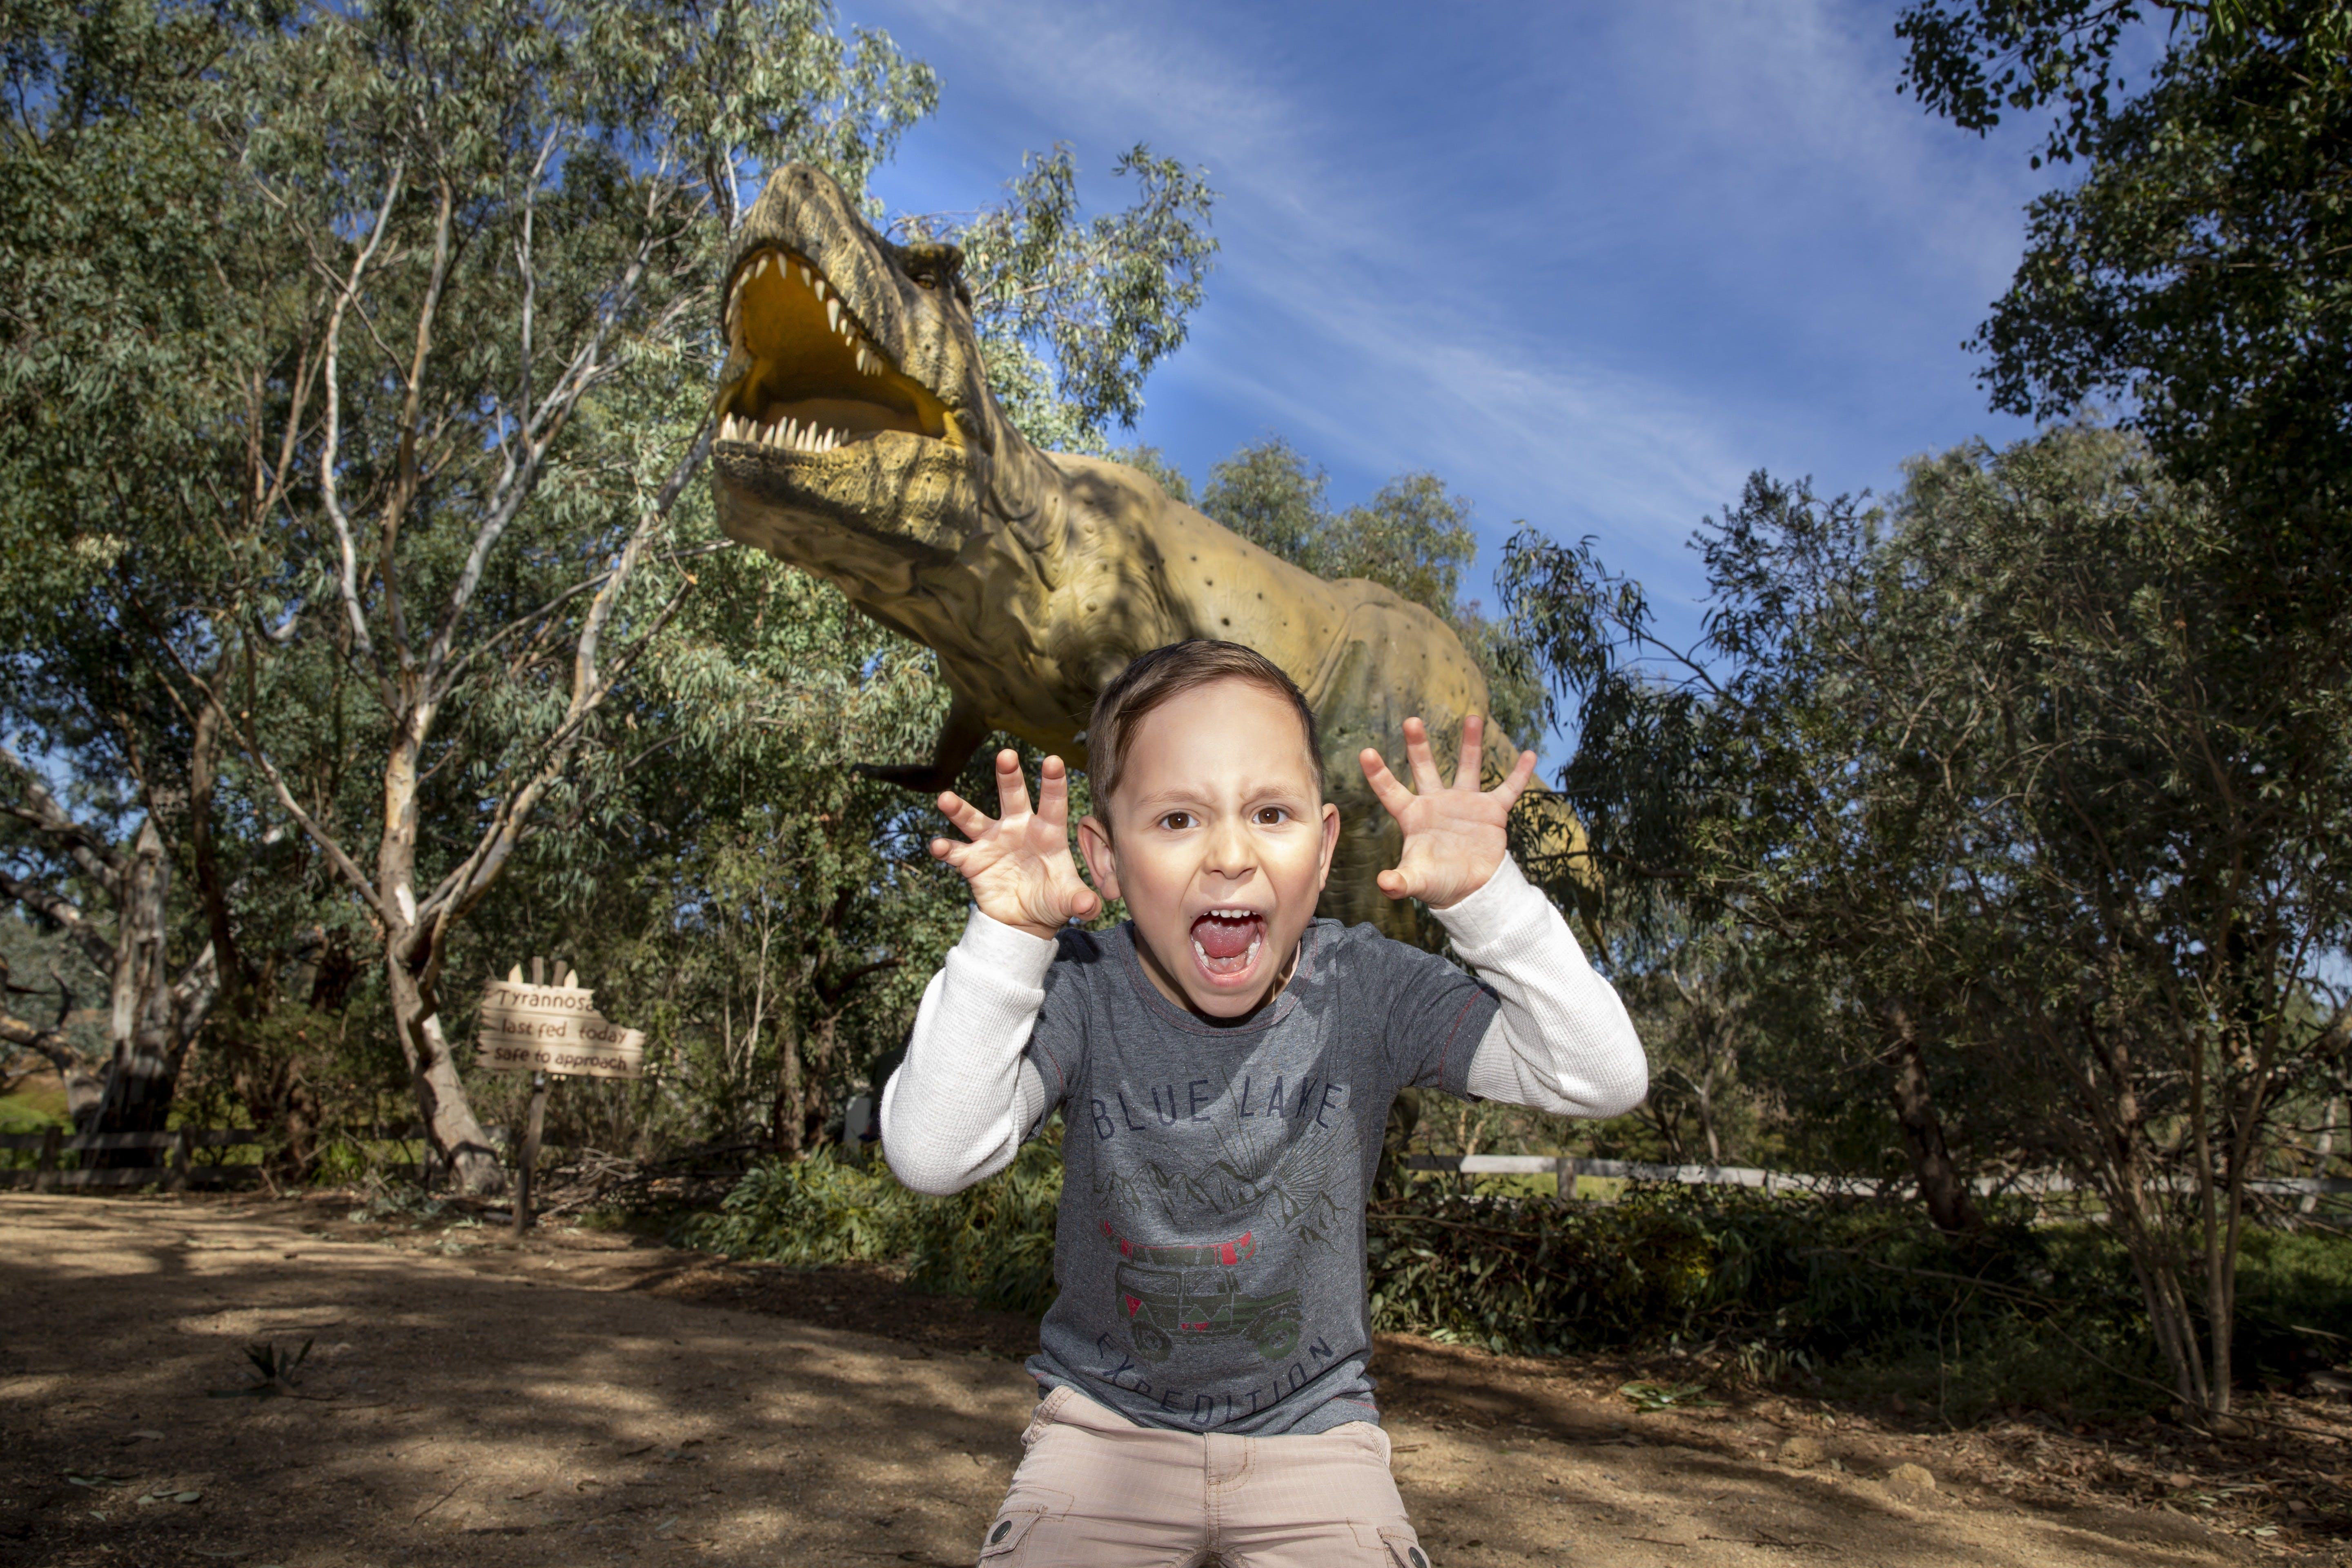 Zoorassic at Werribee Open Range Zoo. - VIC Tourism